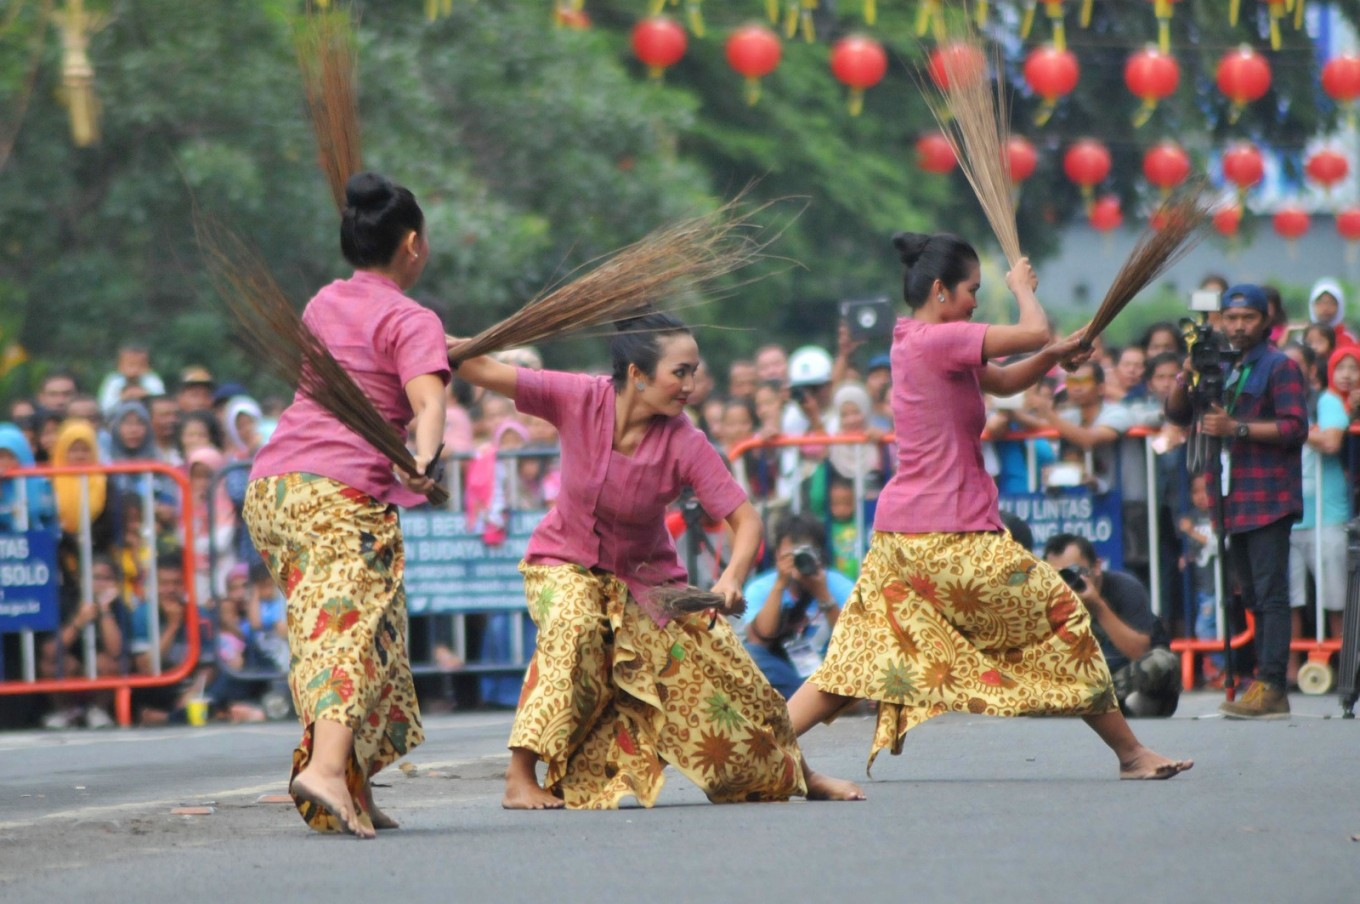 Women perform the Gotong Royong (mutual cooperation) dance as part of the Adeging Kutha Sala colossal dance.